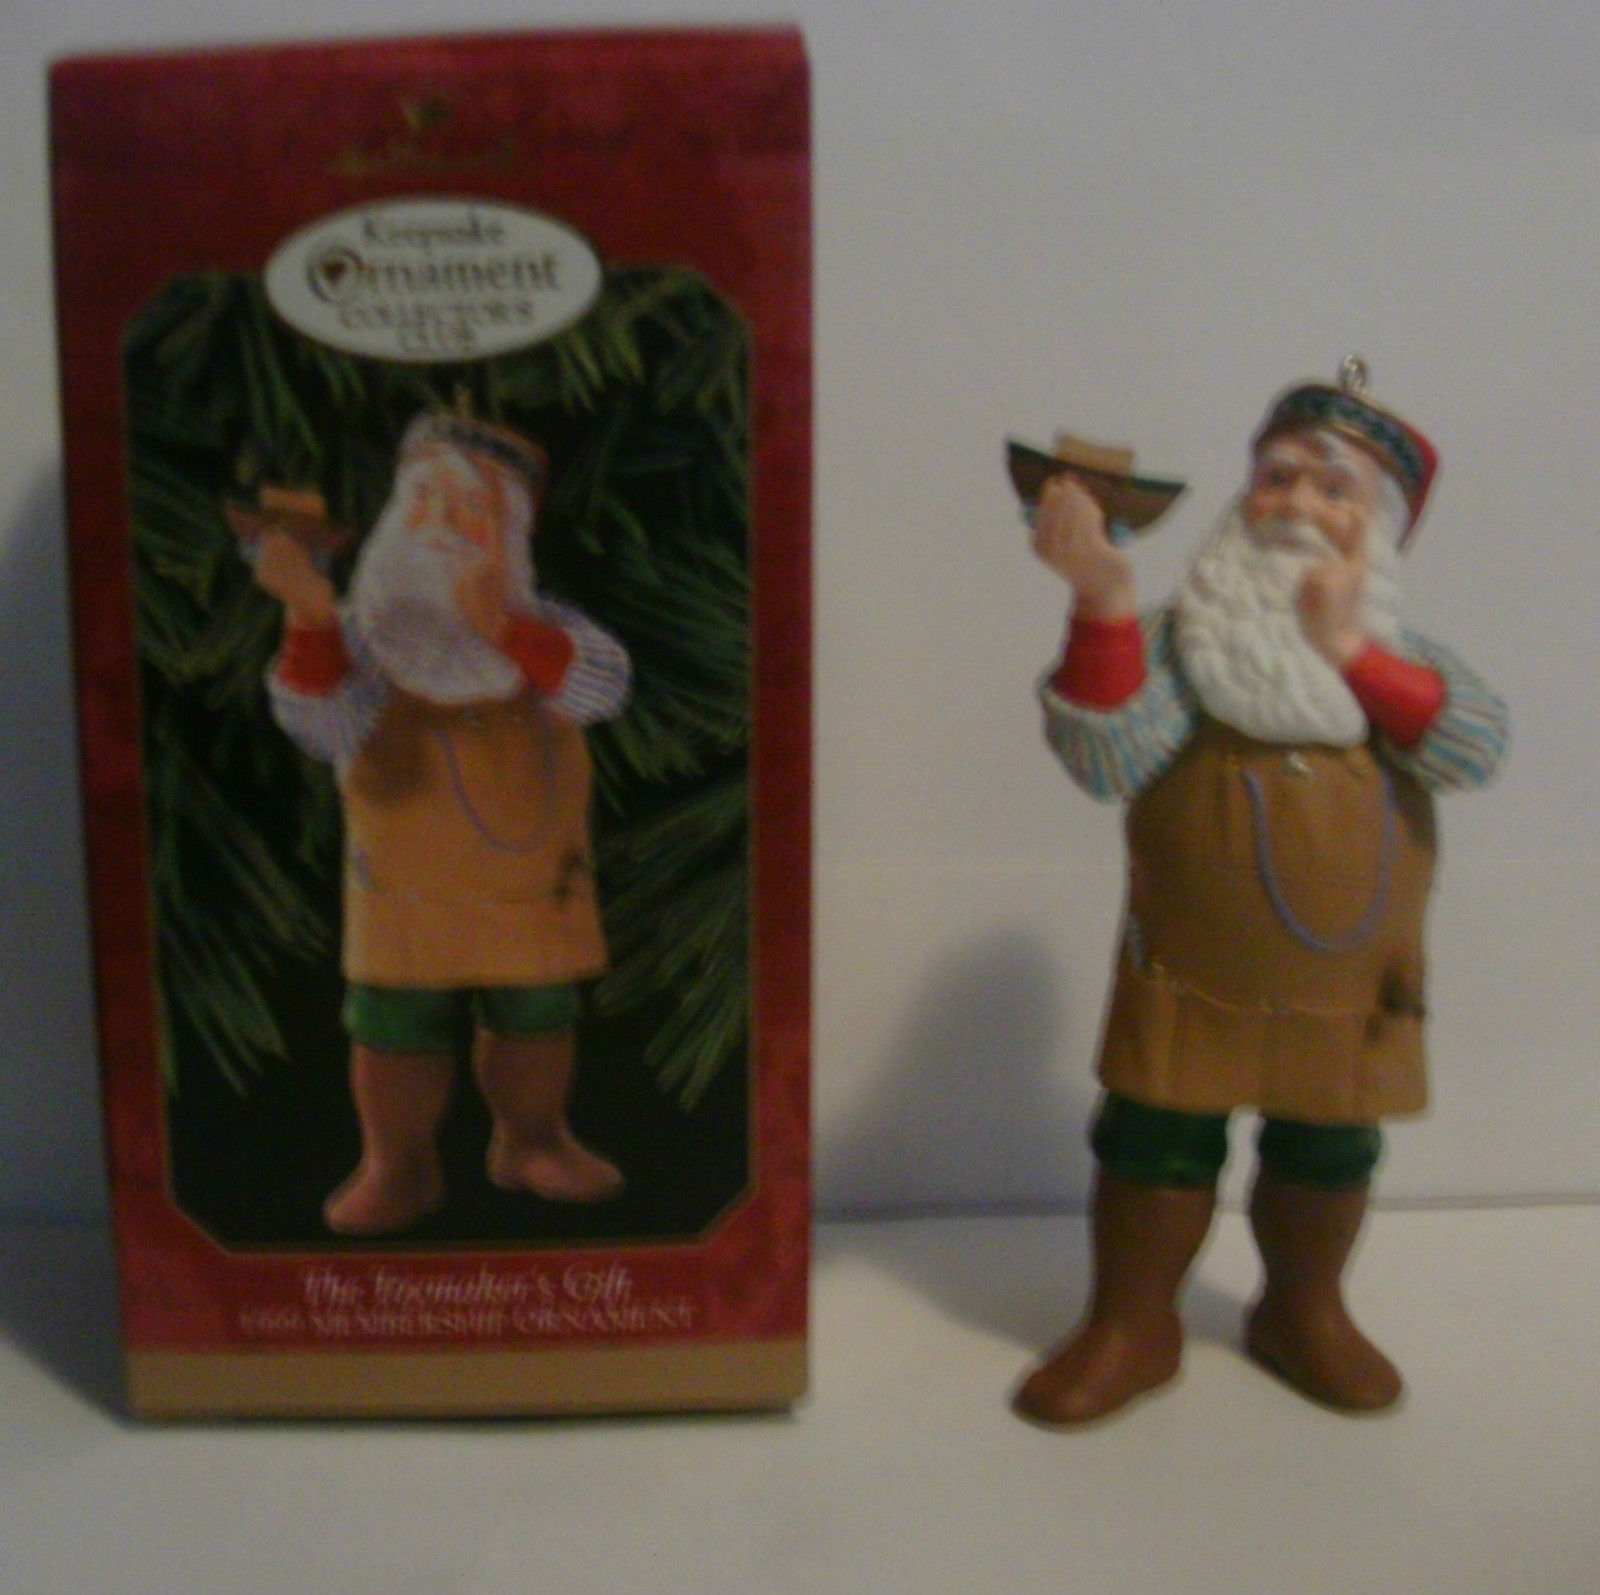 Hallmark Ornament Collectors Club 1999 3 Piece Set image 5